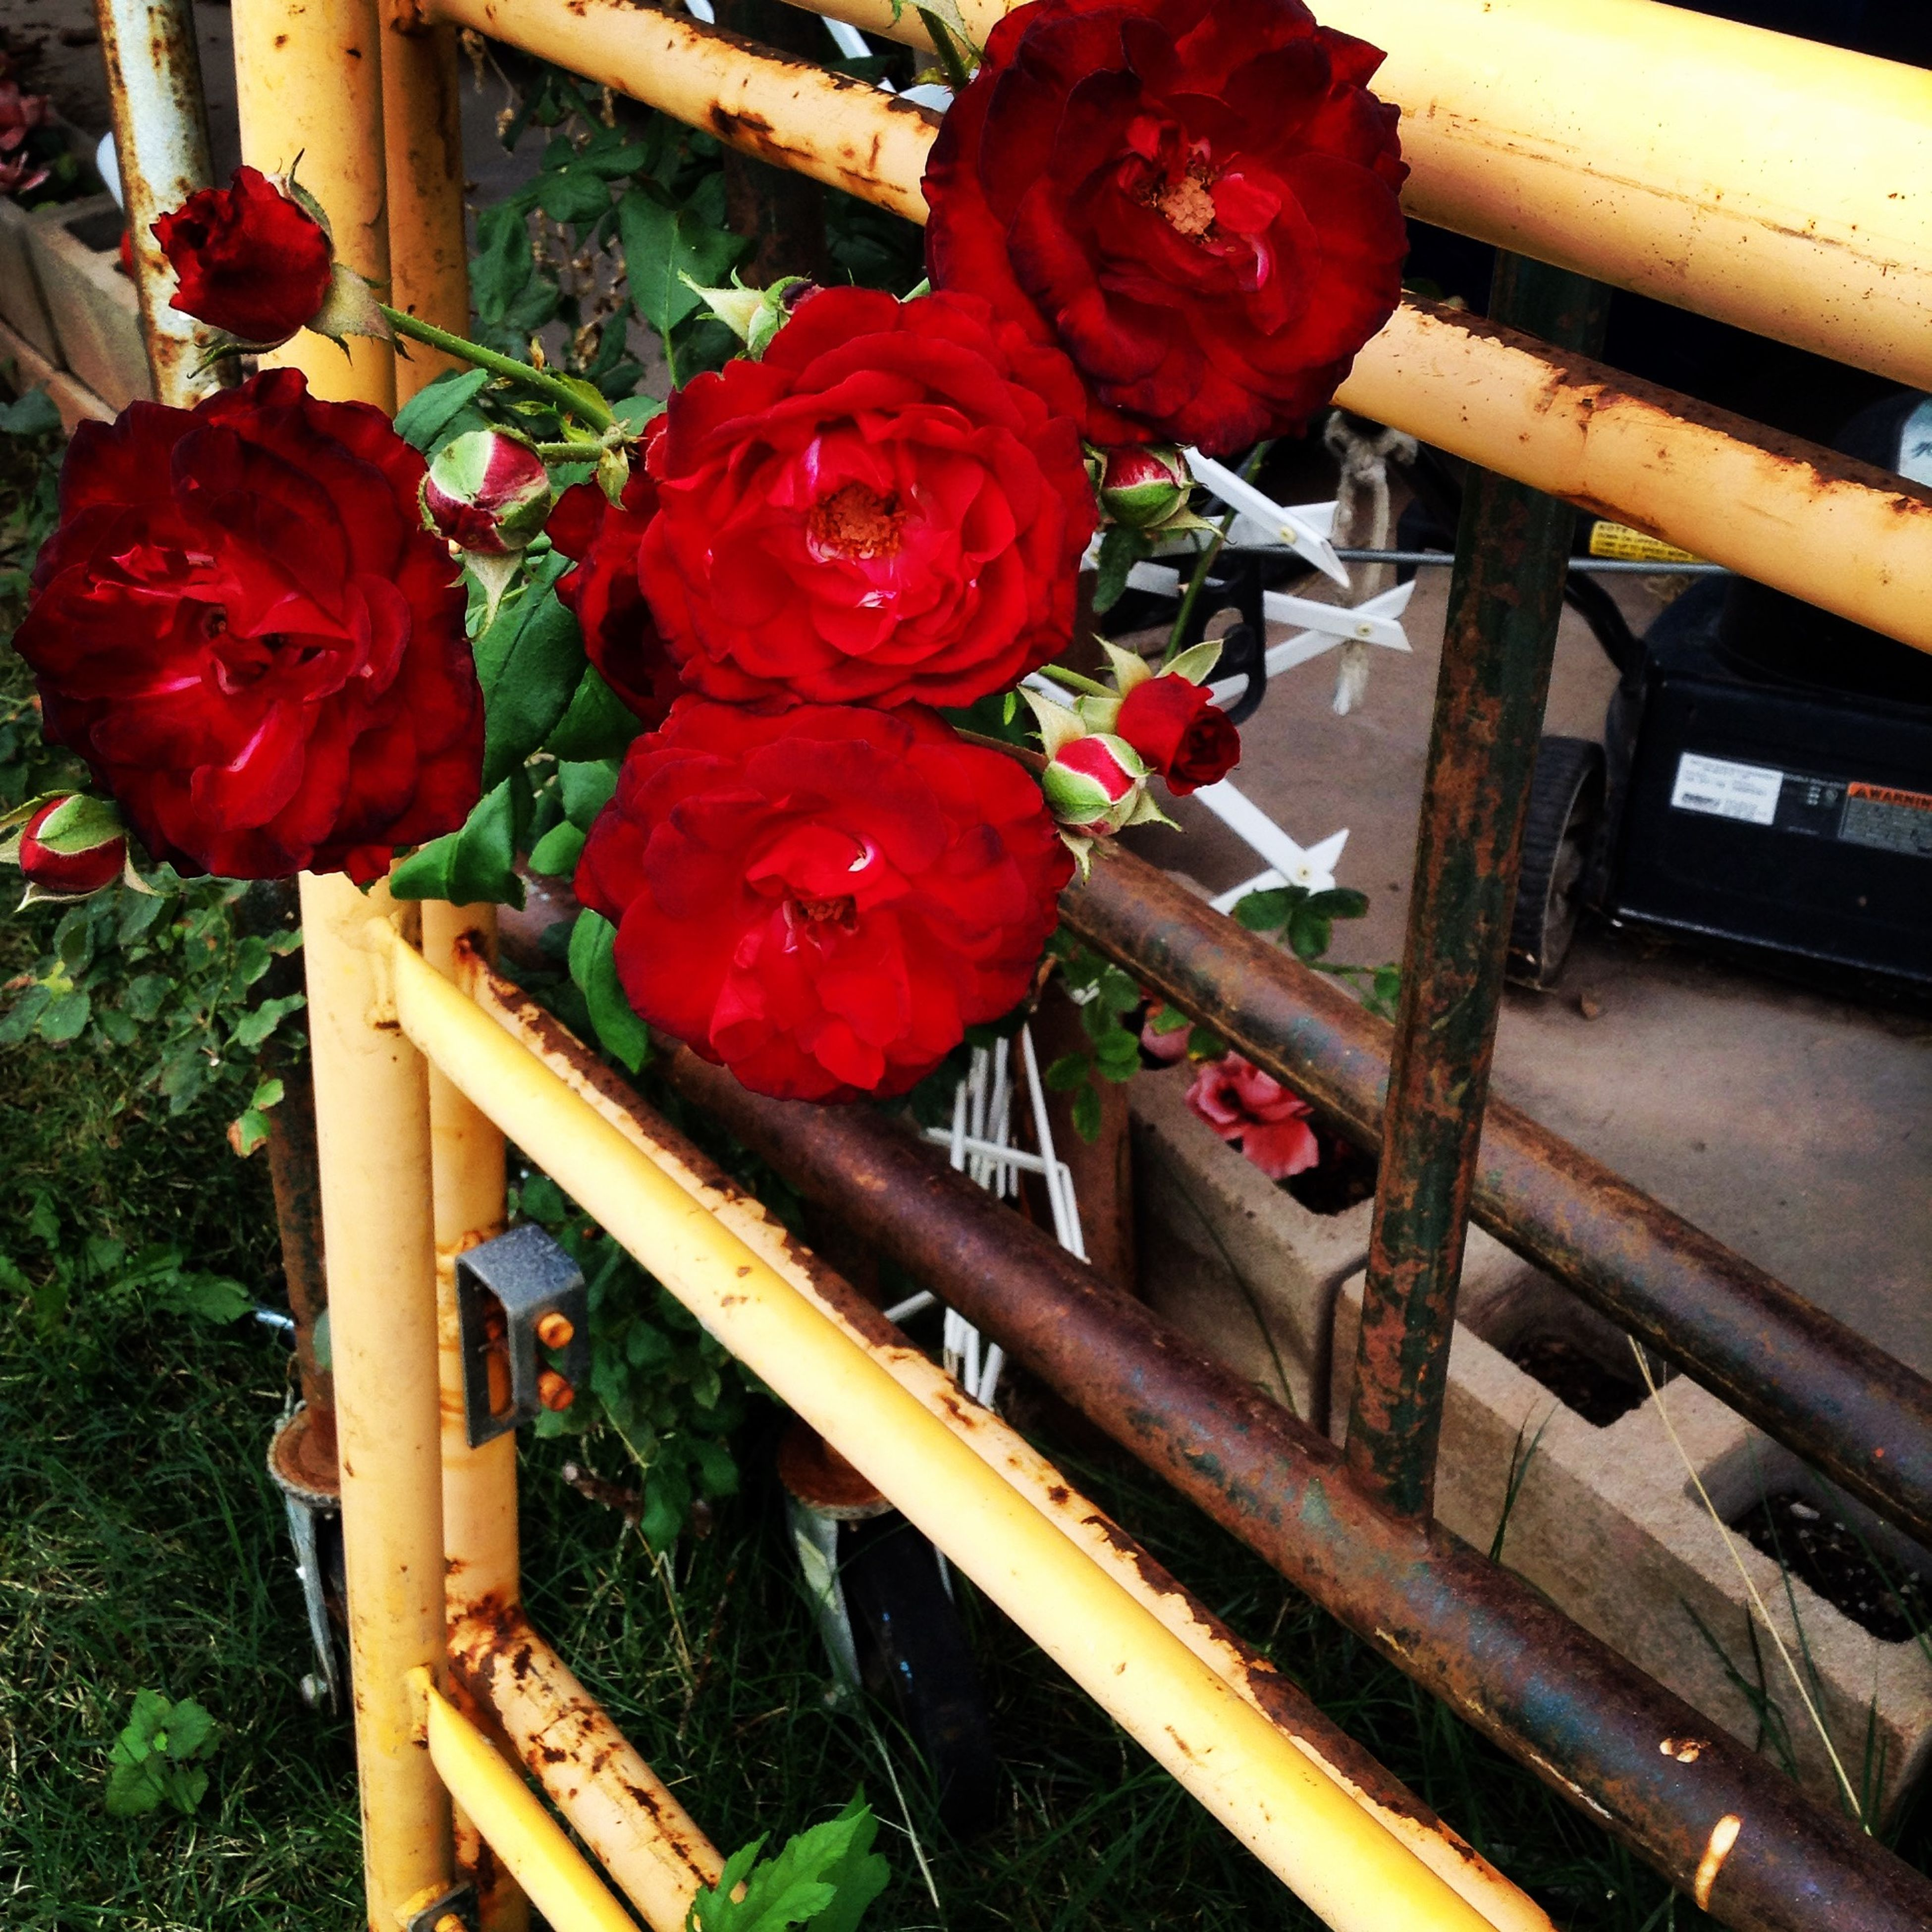 red, wood - material, freshness, flower, wooden, close-up, day, no people, high angle view, wood, indoors, plant, growth, still life, metal, railing, petal, table, nature